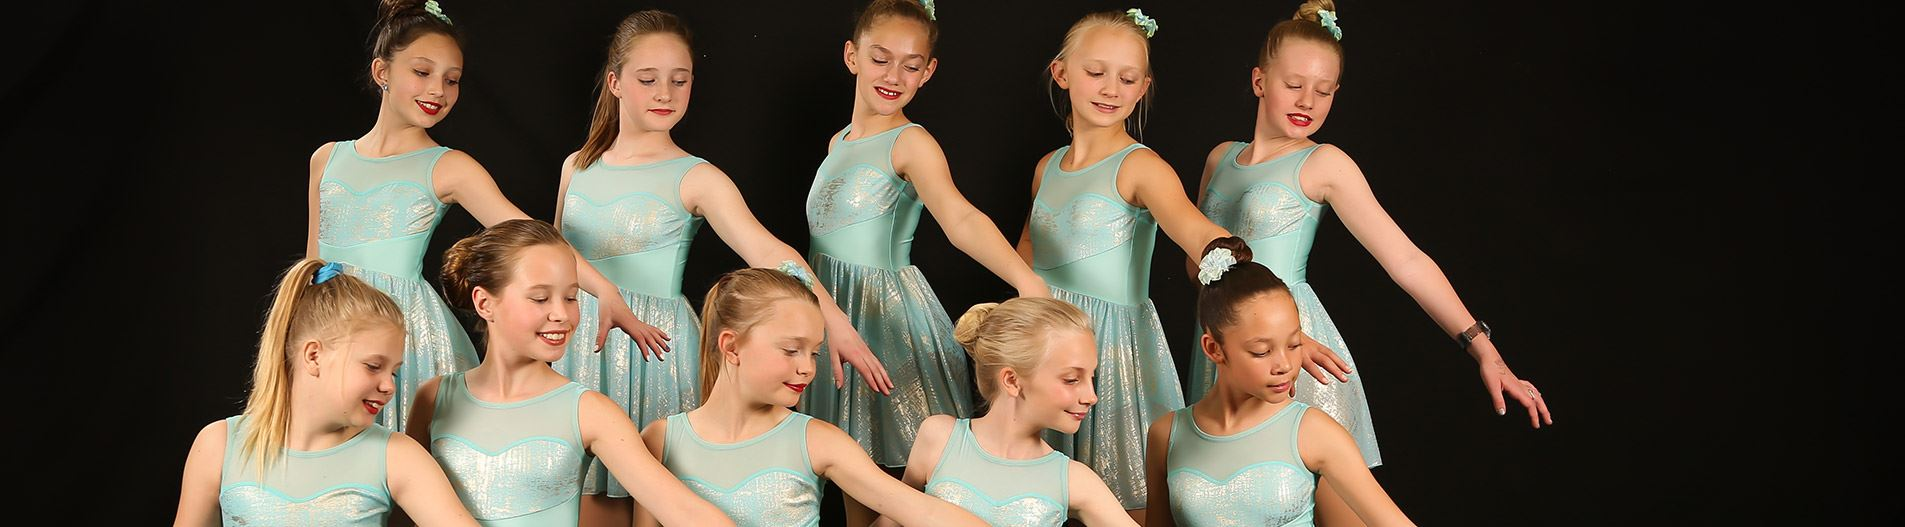 Youth dressed in dance outfits for group portrait